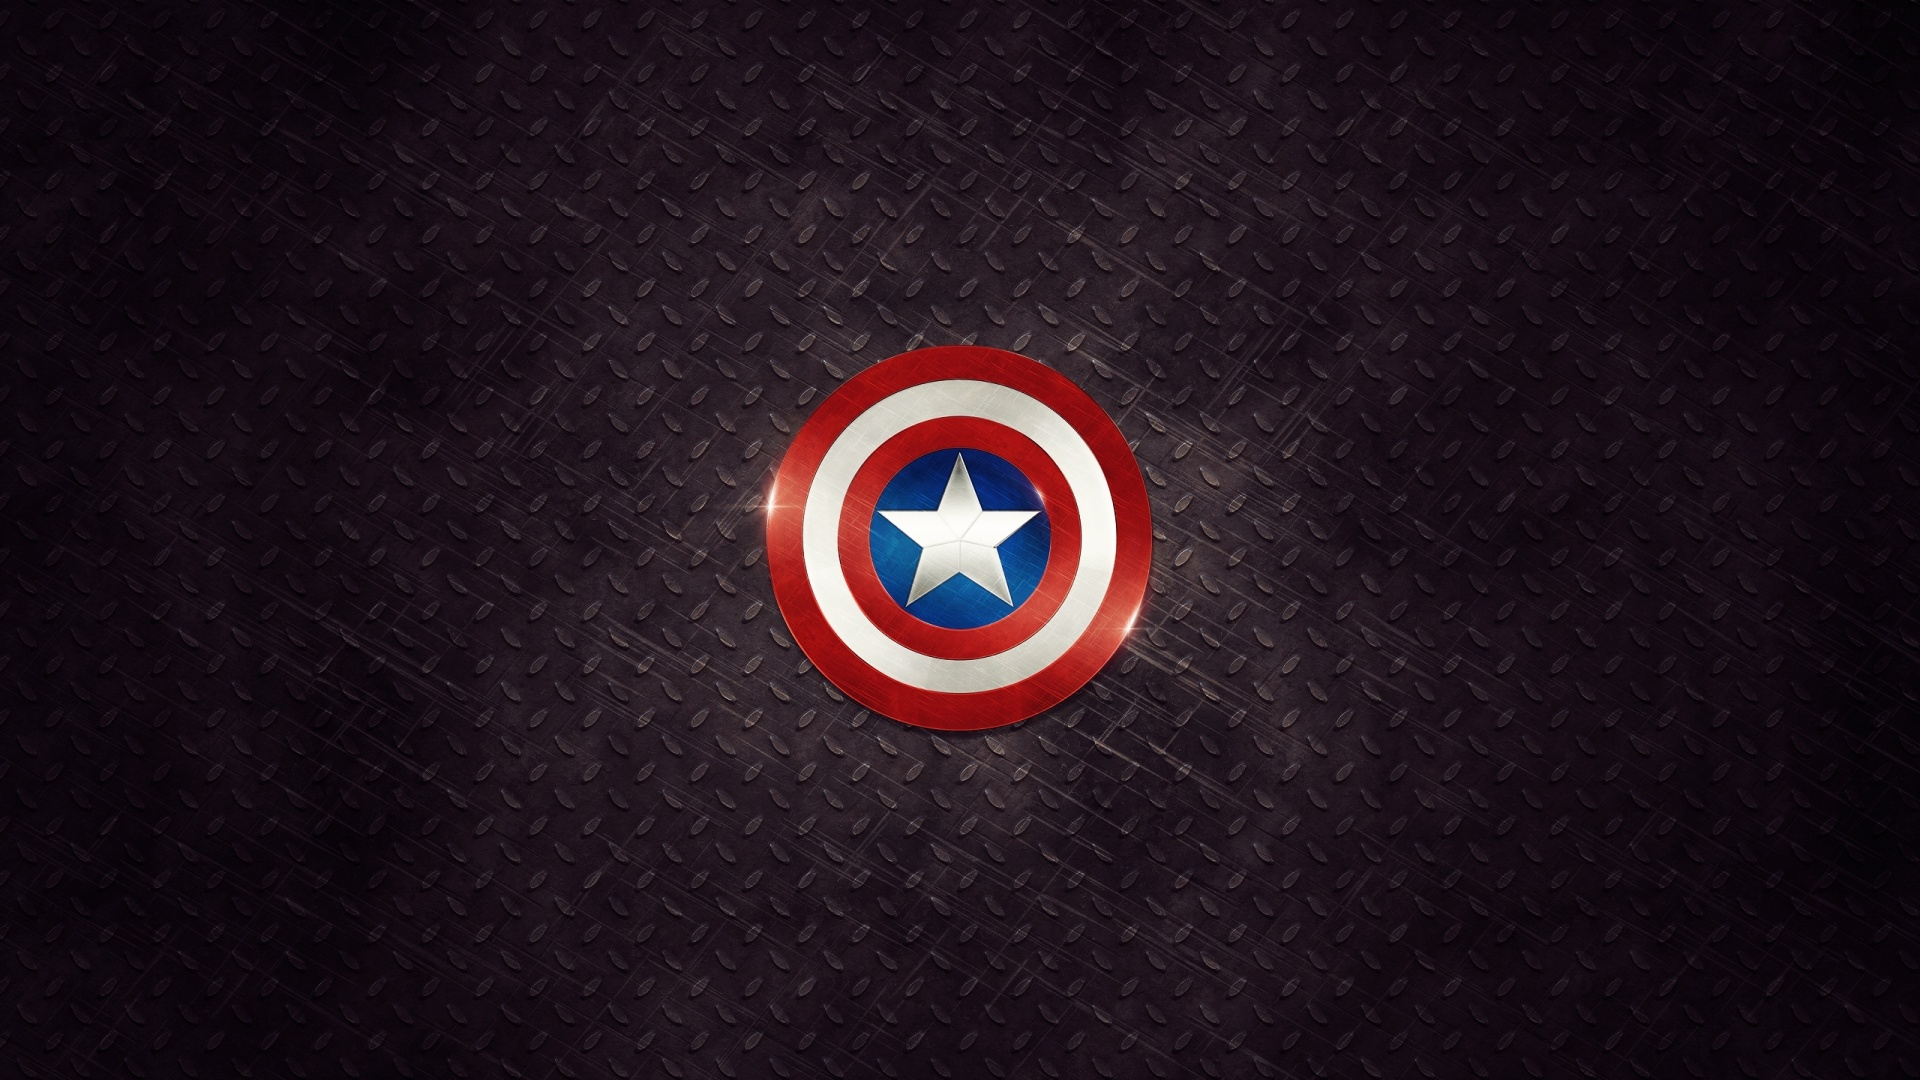 Captain America Logo | 1920 x 1080 | Download | Close: www.bhmpics.com/view-captain_america_logo-1920x1080.html